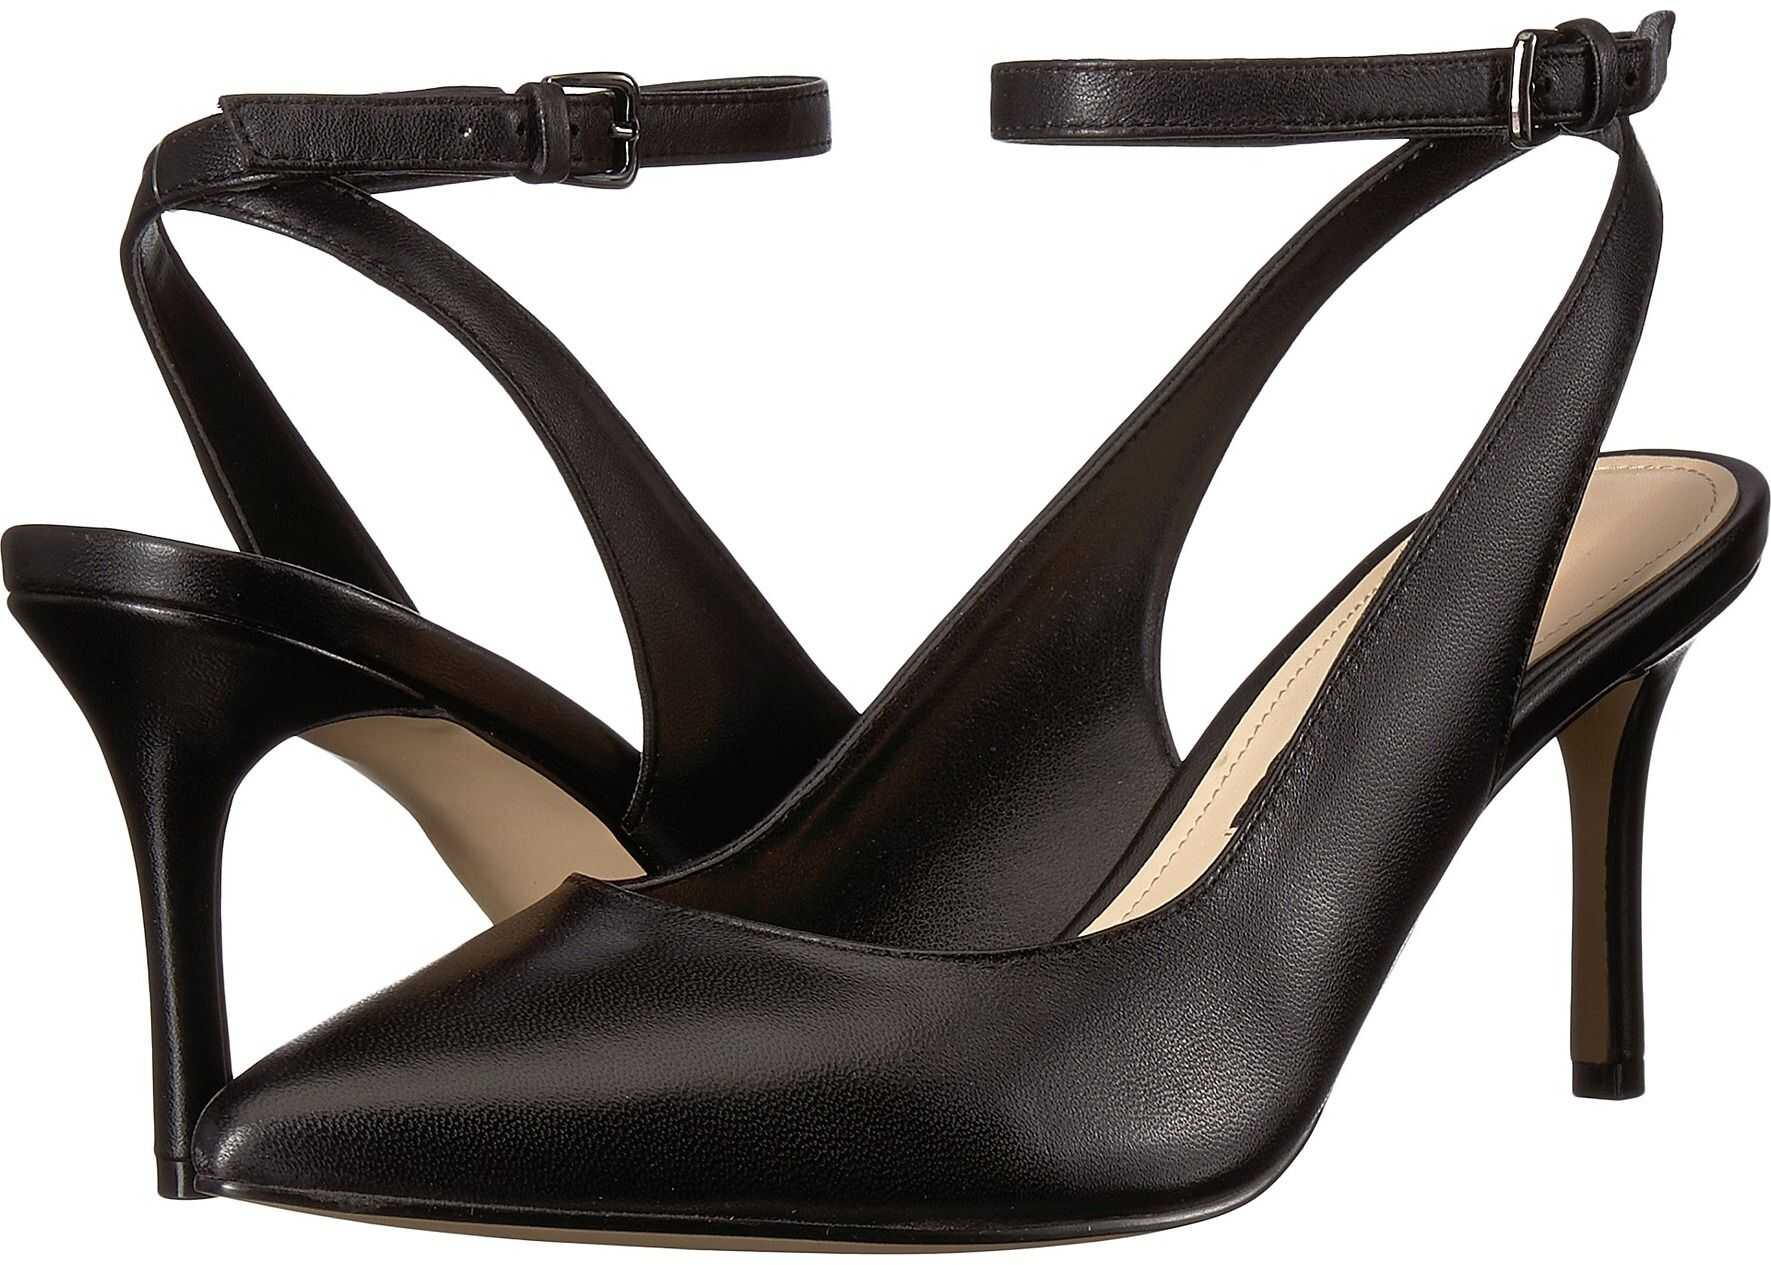 Nine West Miss Thing Pointed Toe Pump Black Leather